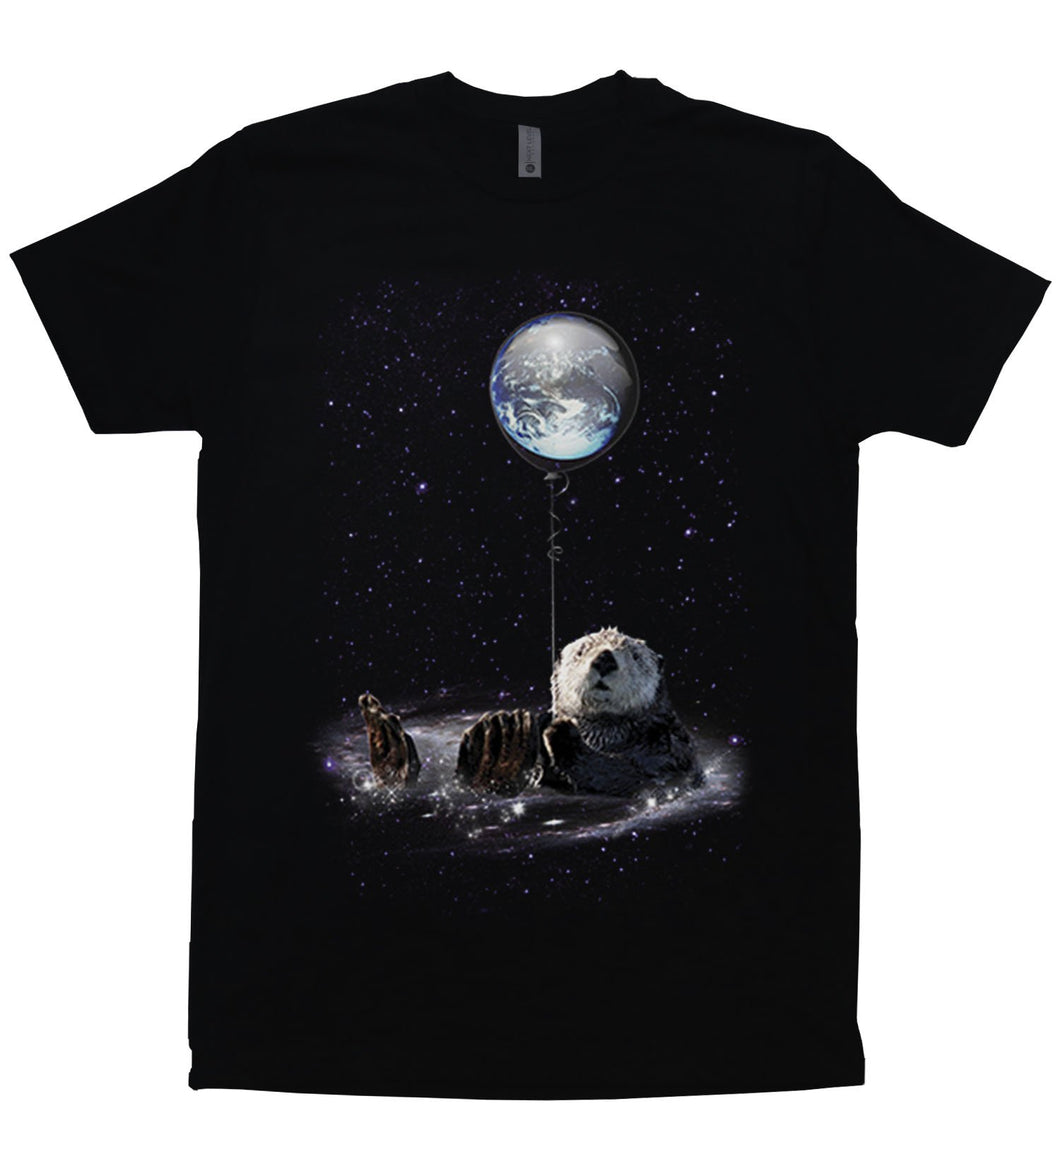 An otter bathing in a cosmic swirl in outer space holding a baloon with the earth inside it.